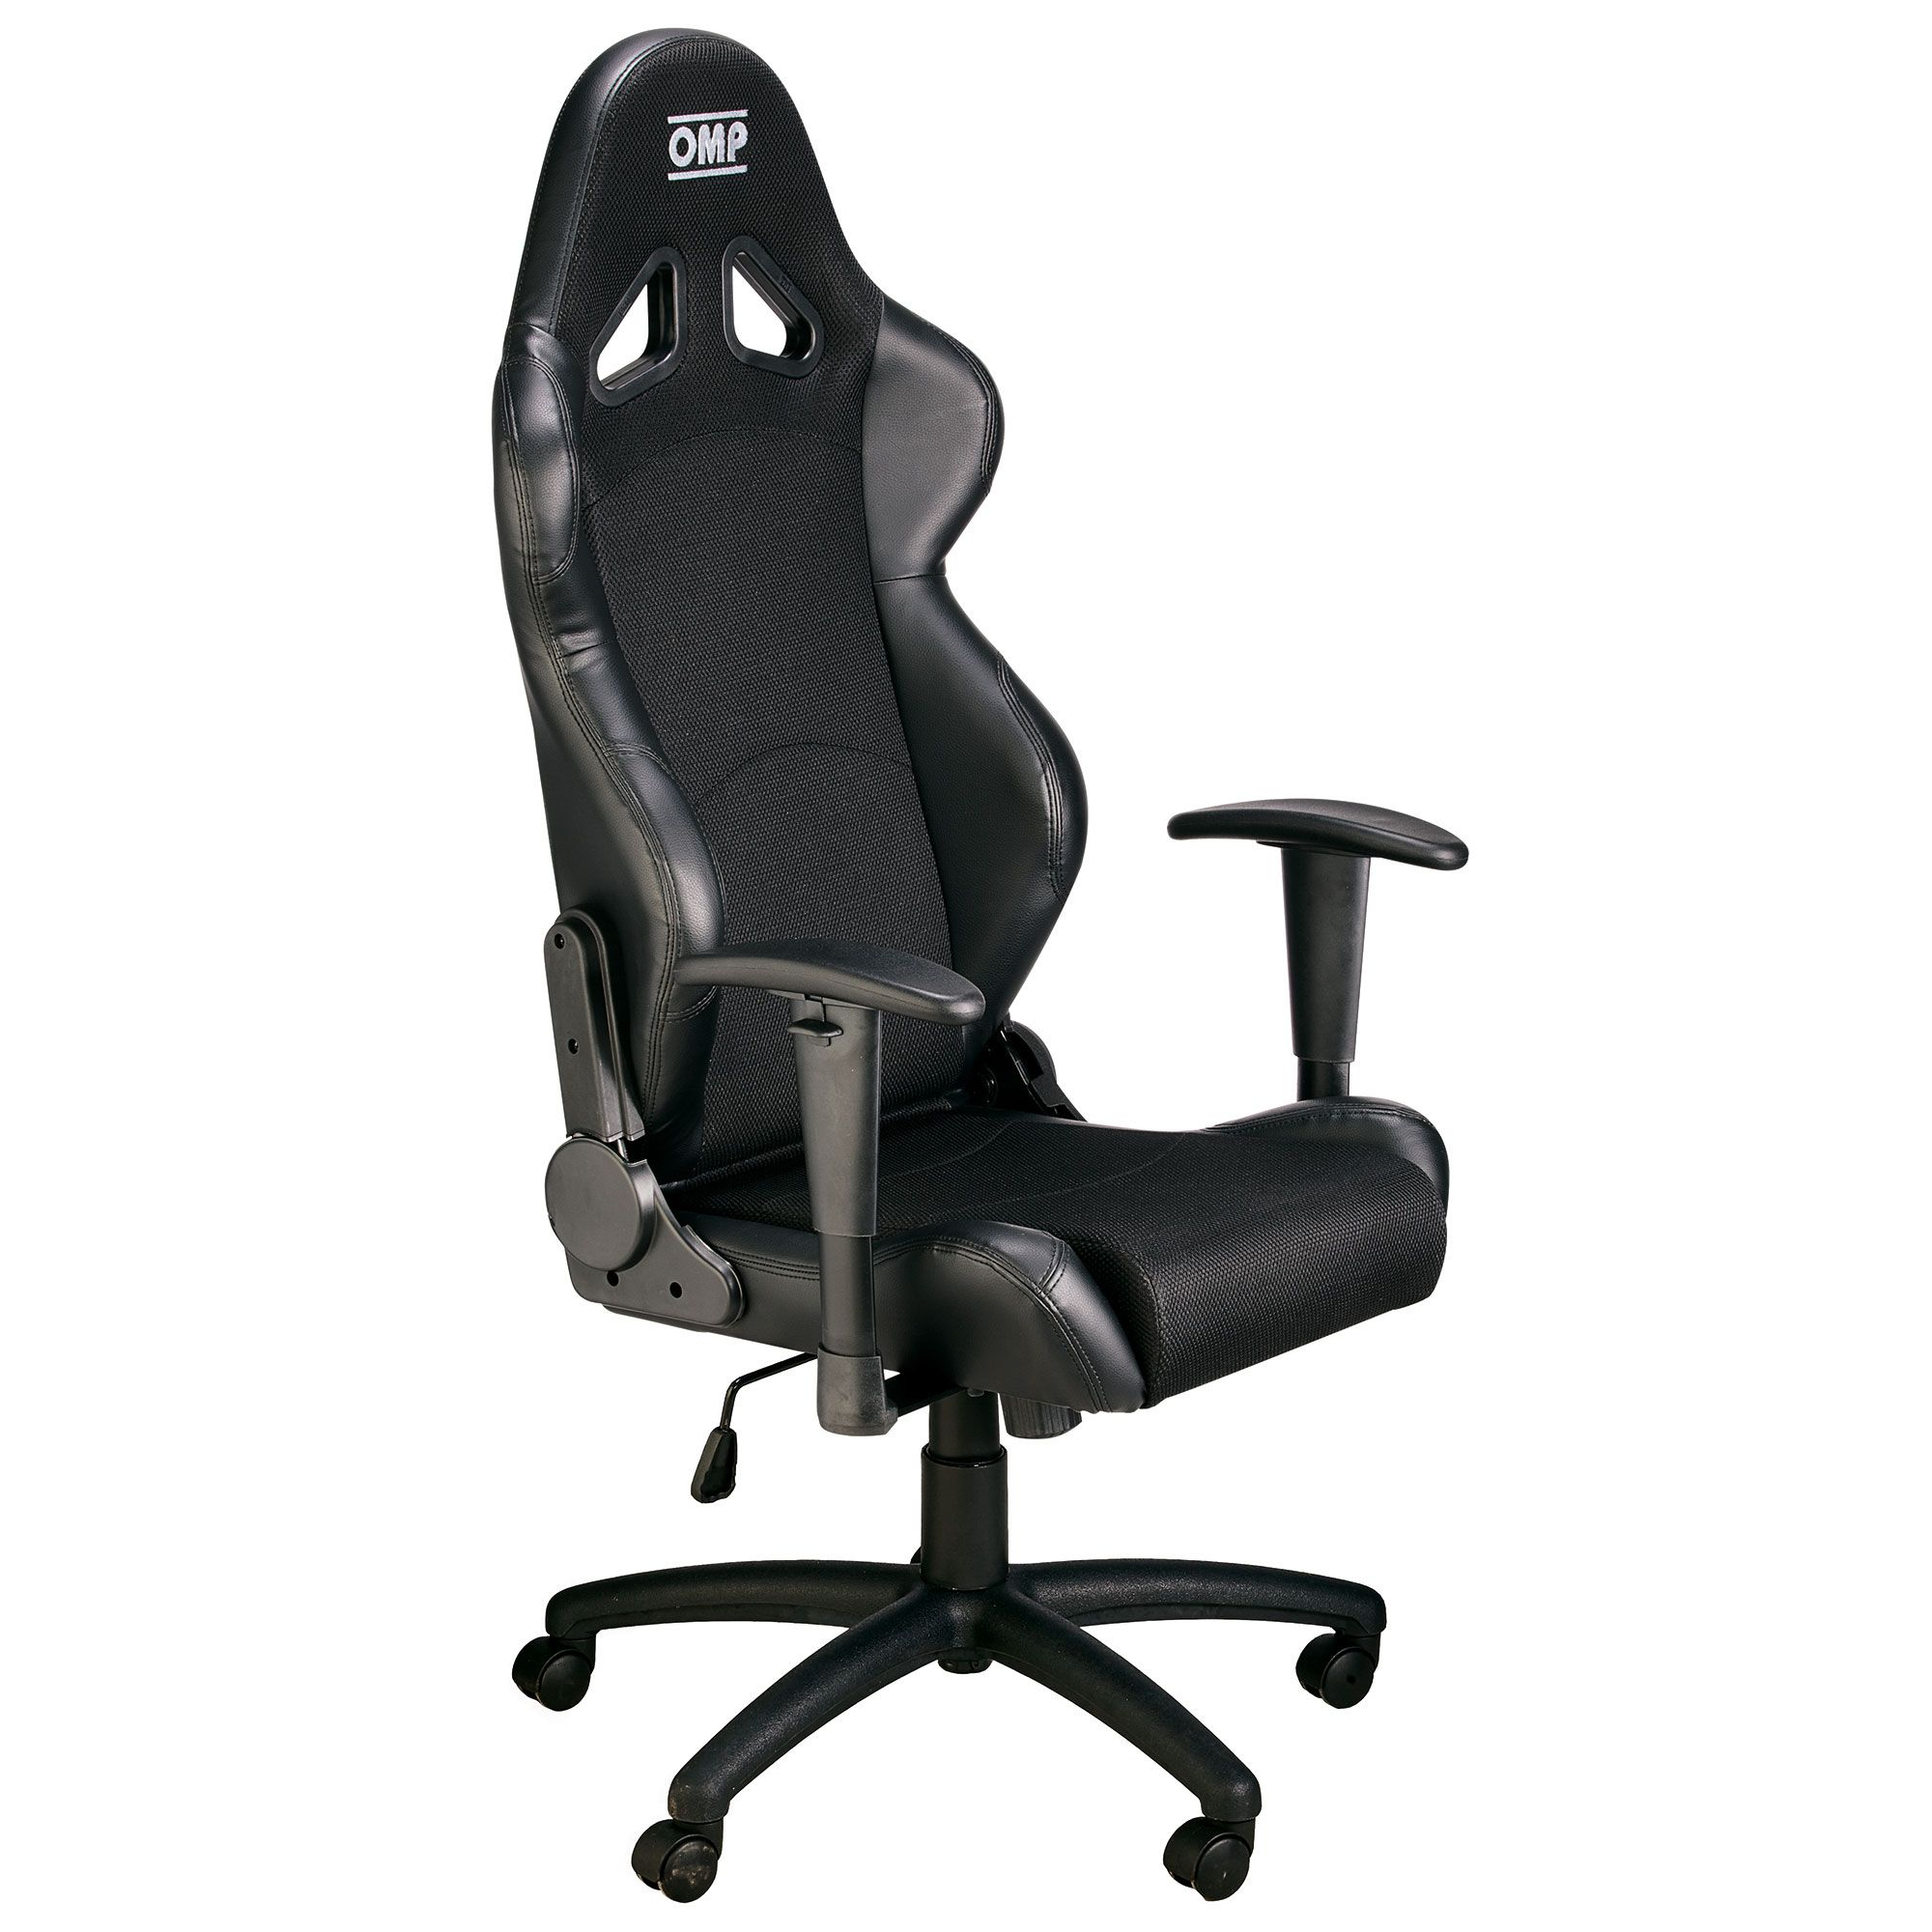 Racing Office Chairs Demon Tweeks with regard to dimensions 2000 X 2000